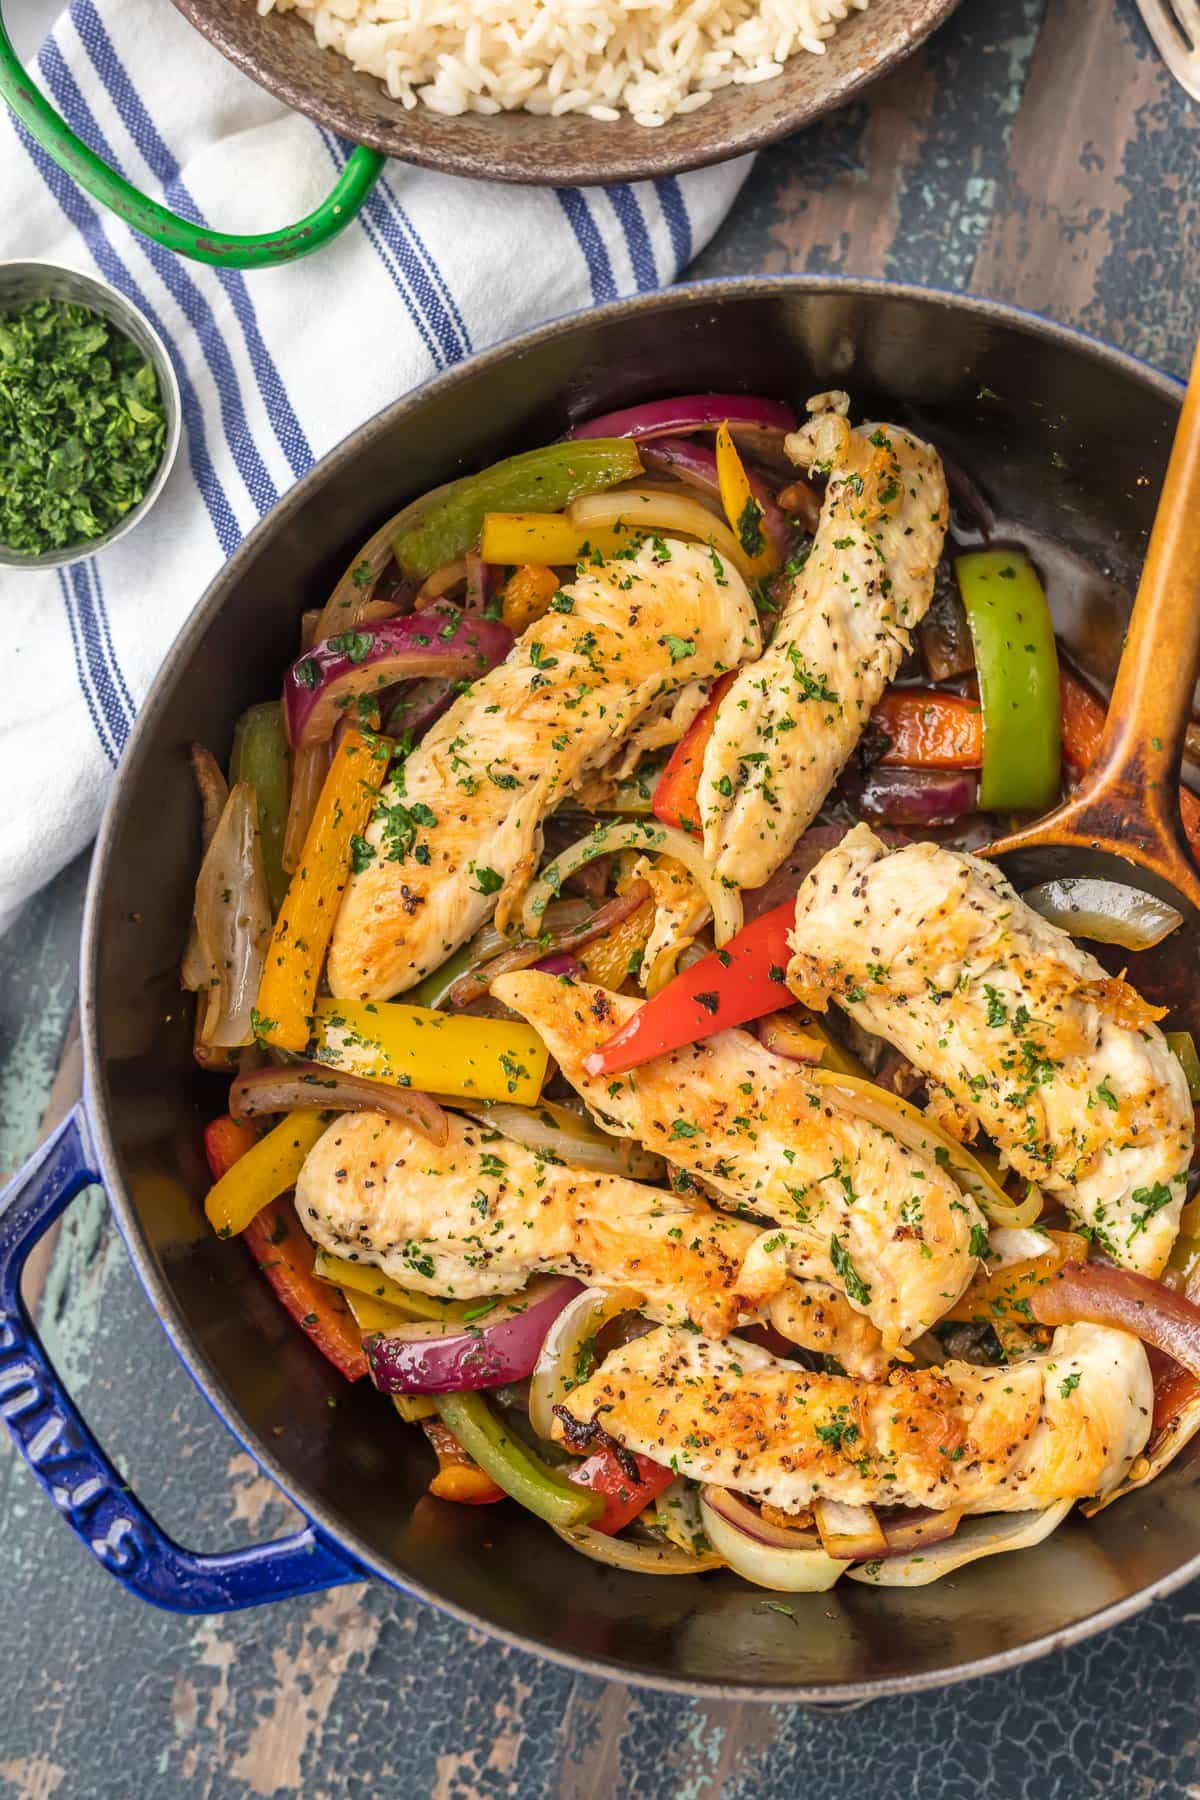 Chicken stir fry in a skillet